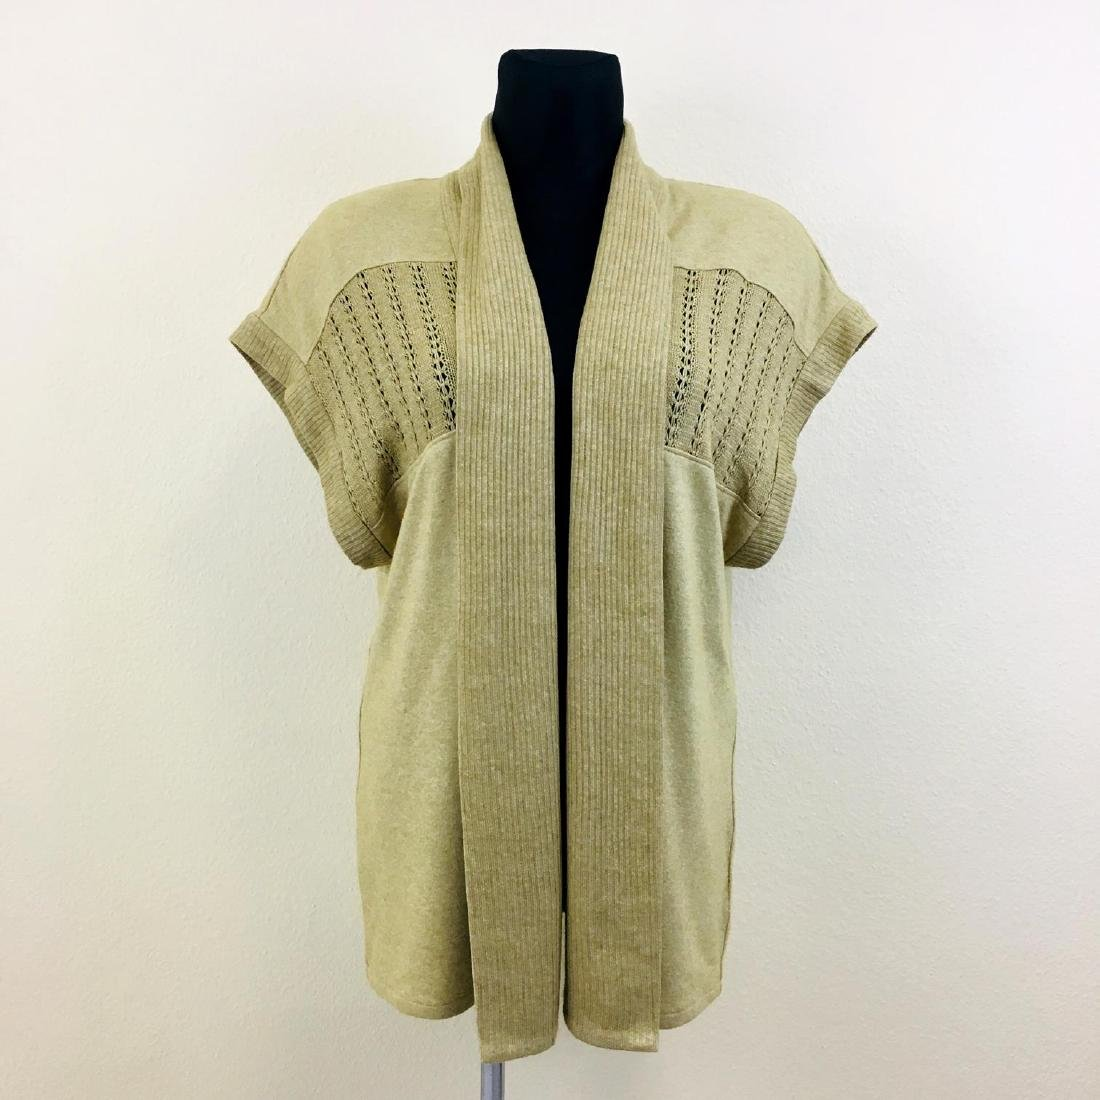 Women's Creation Charmante Wool Blend Cardigan Sweater